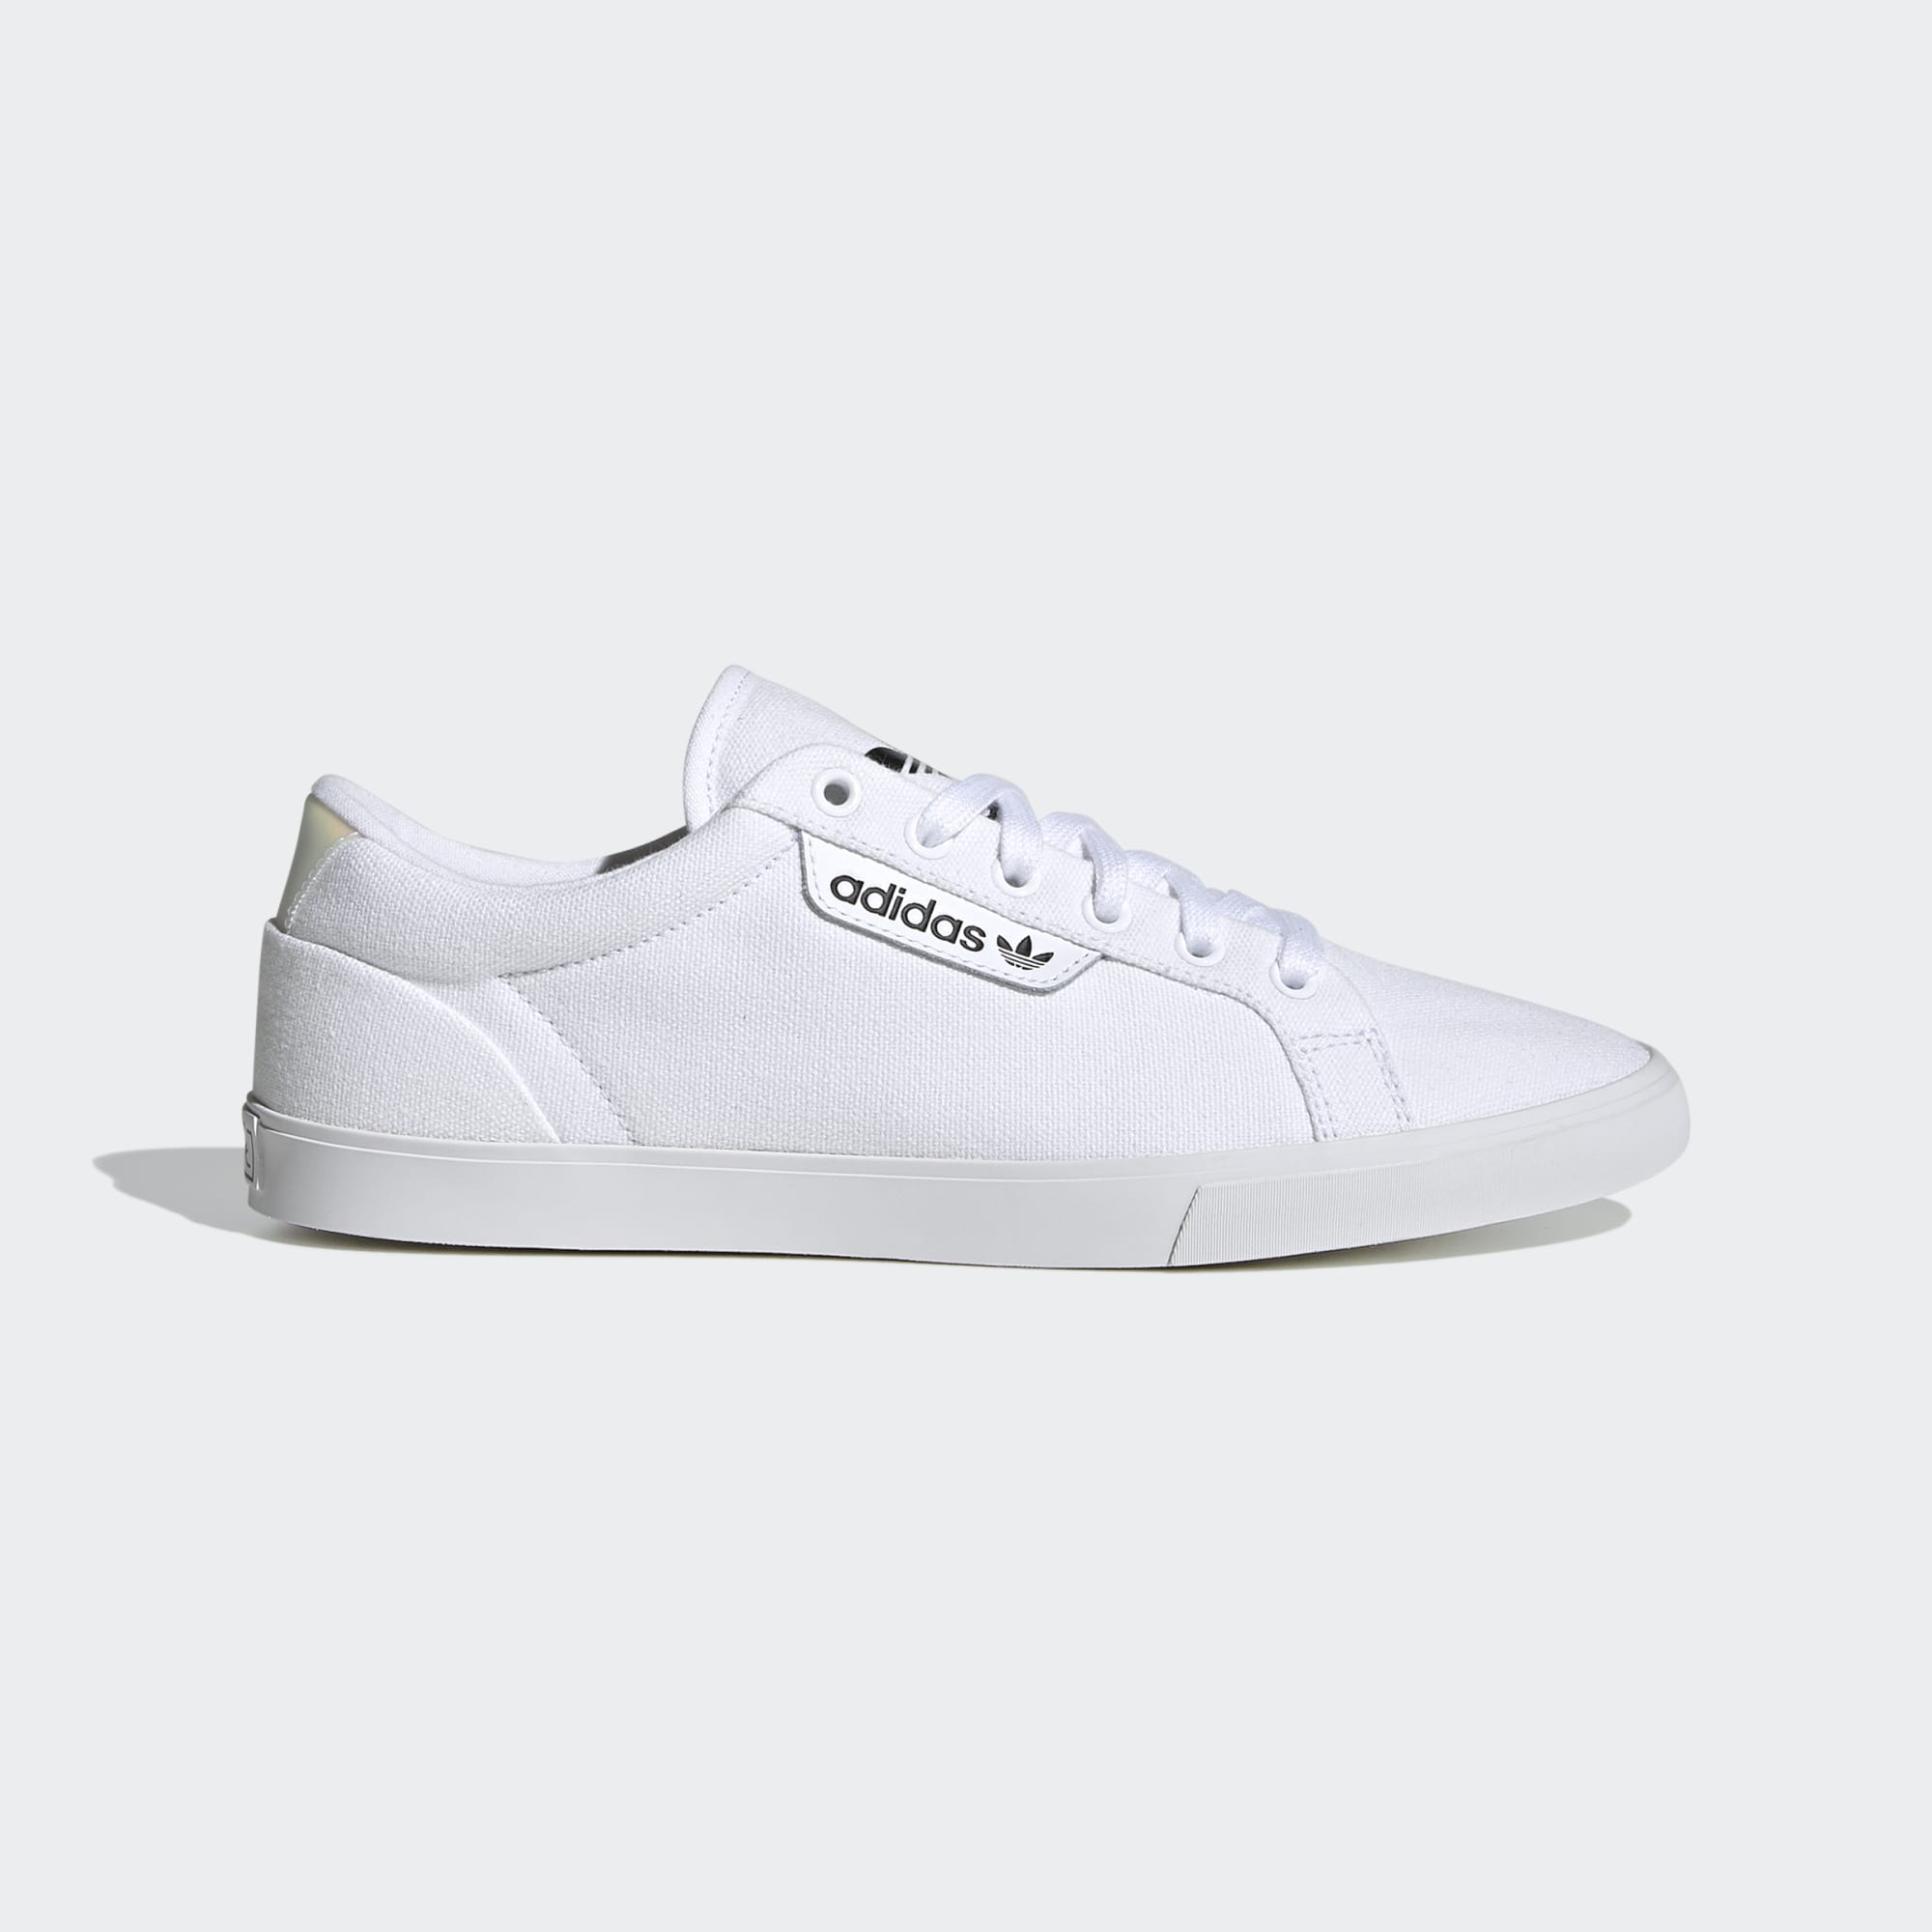 Adidas Womens Sleek Lo Shoe - White/Crystal White